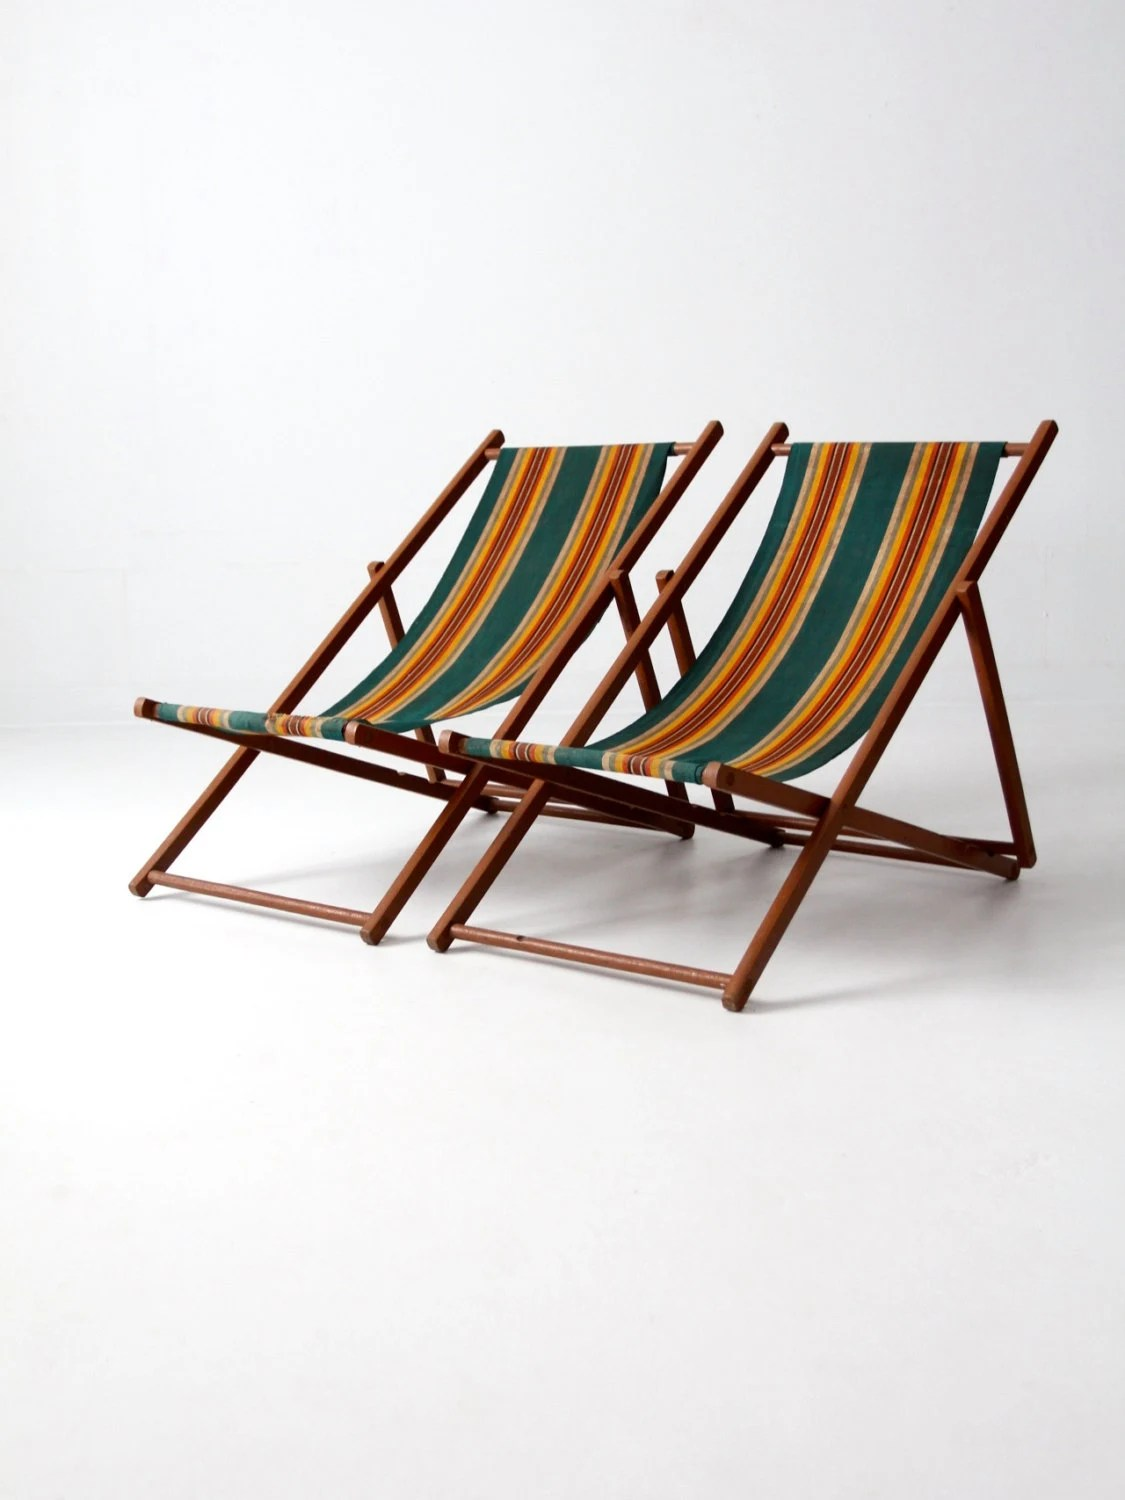 folding beach chairs canada bedroom chair on casters vintage deck stripe by 86home